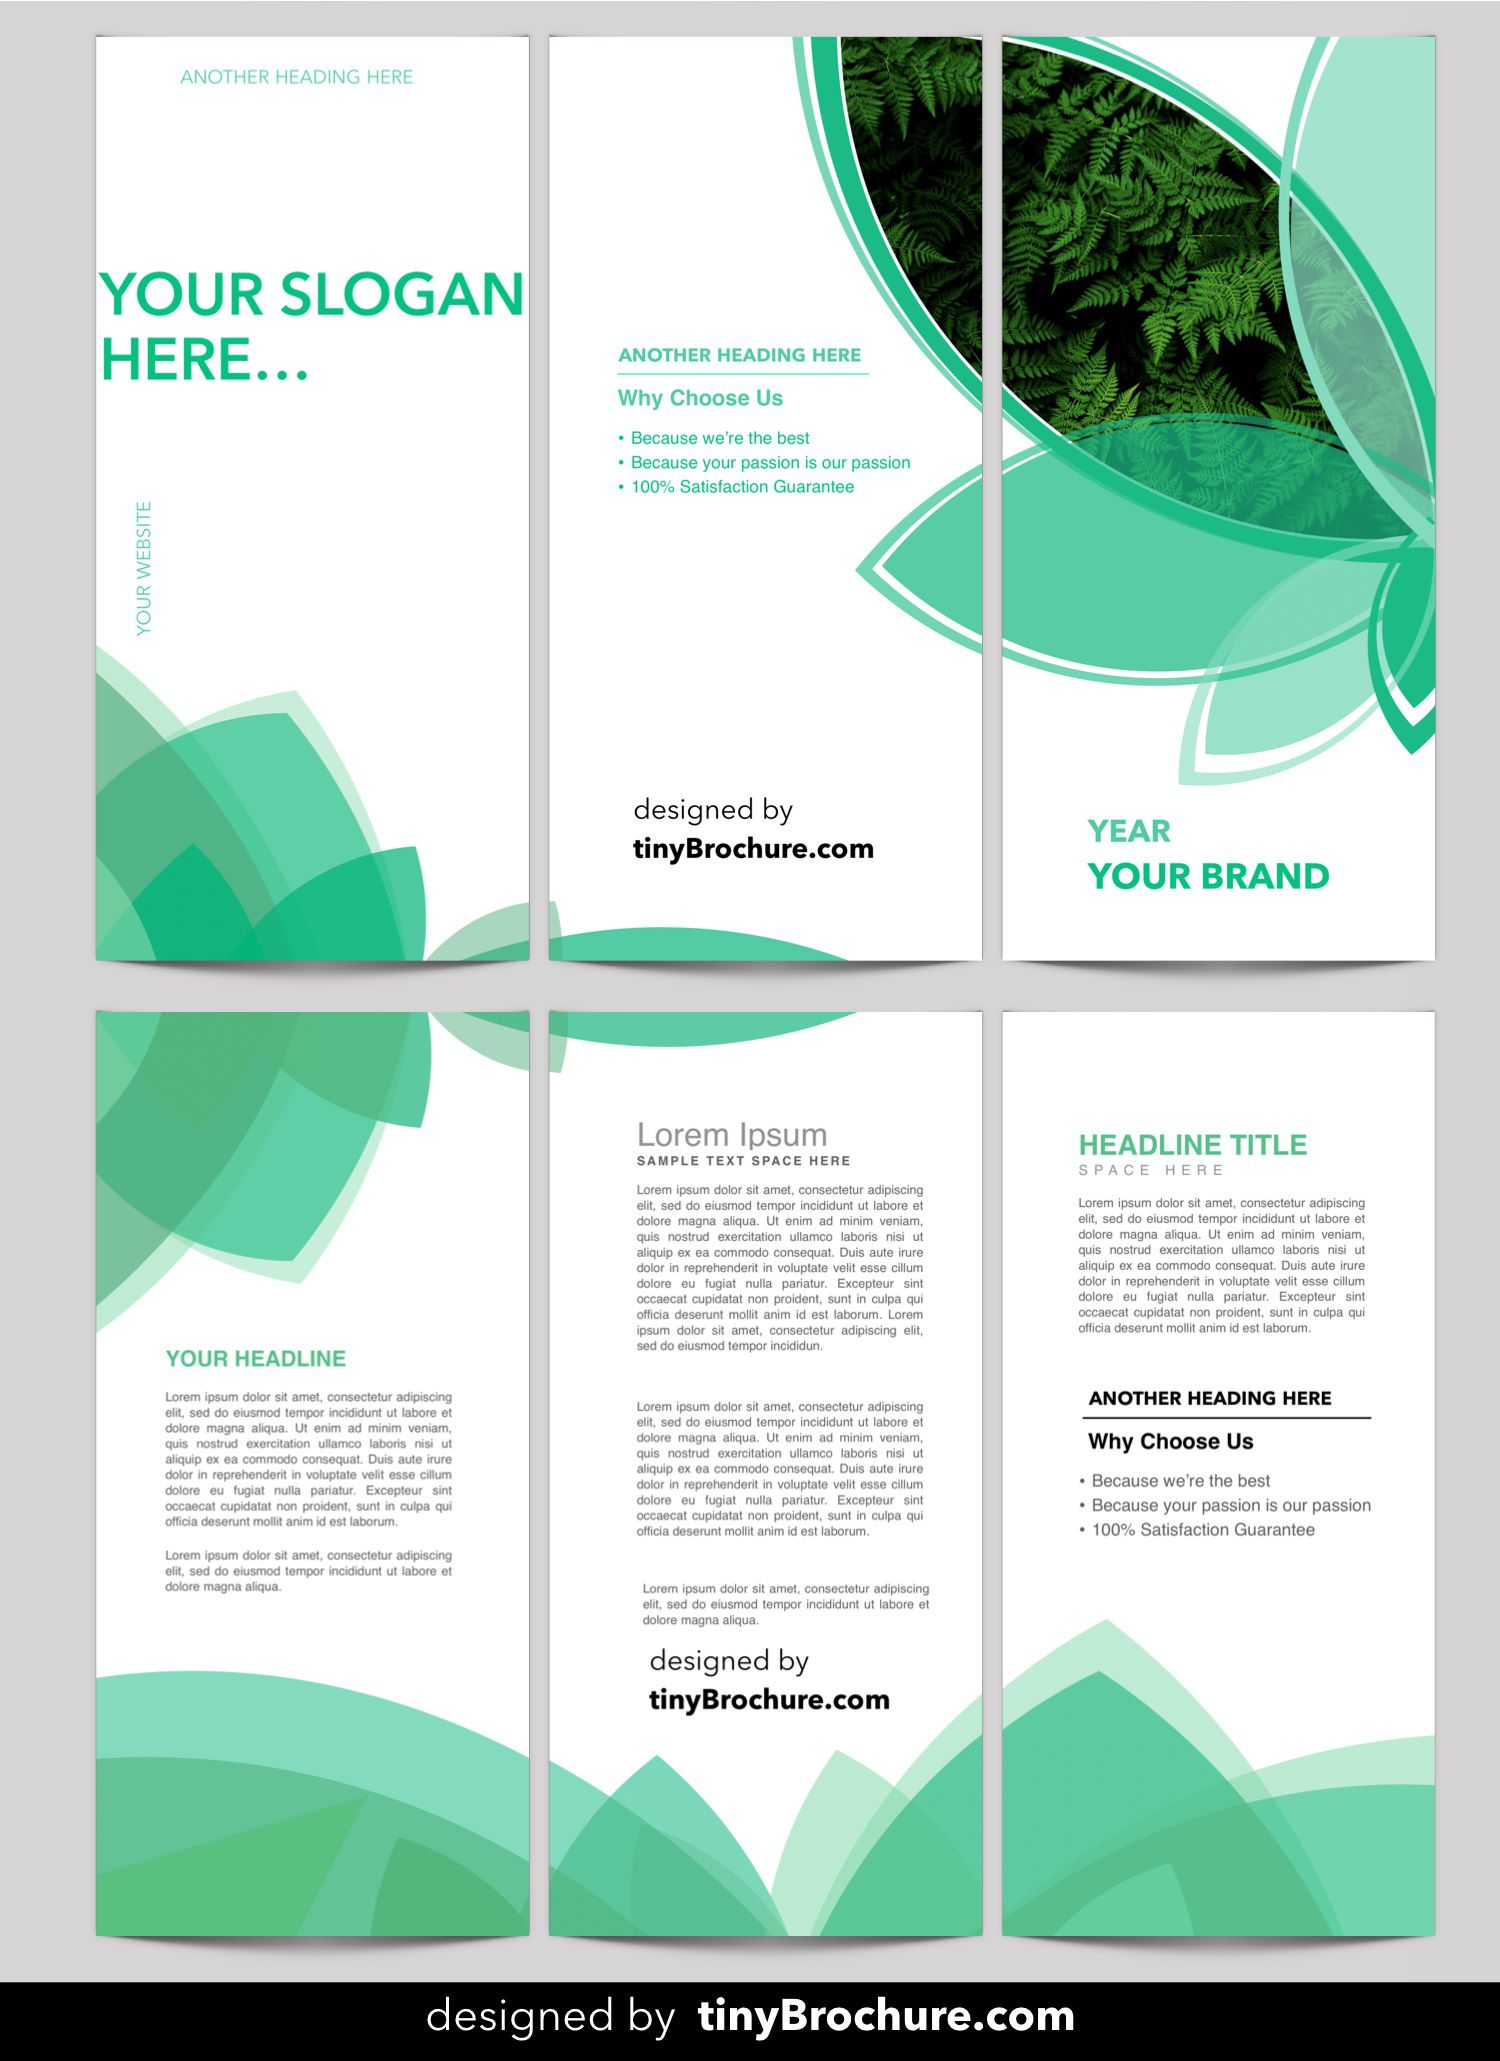 001 Dreaded Download Template For Word Concept  Wordpres Free Resume 2007 Addres LabelFull